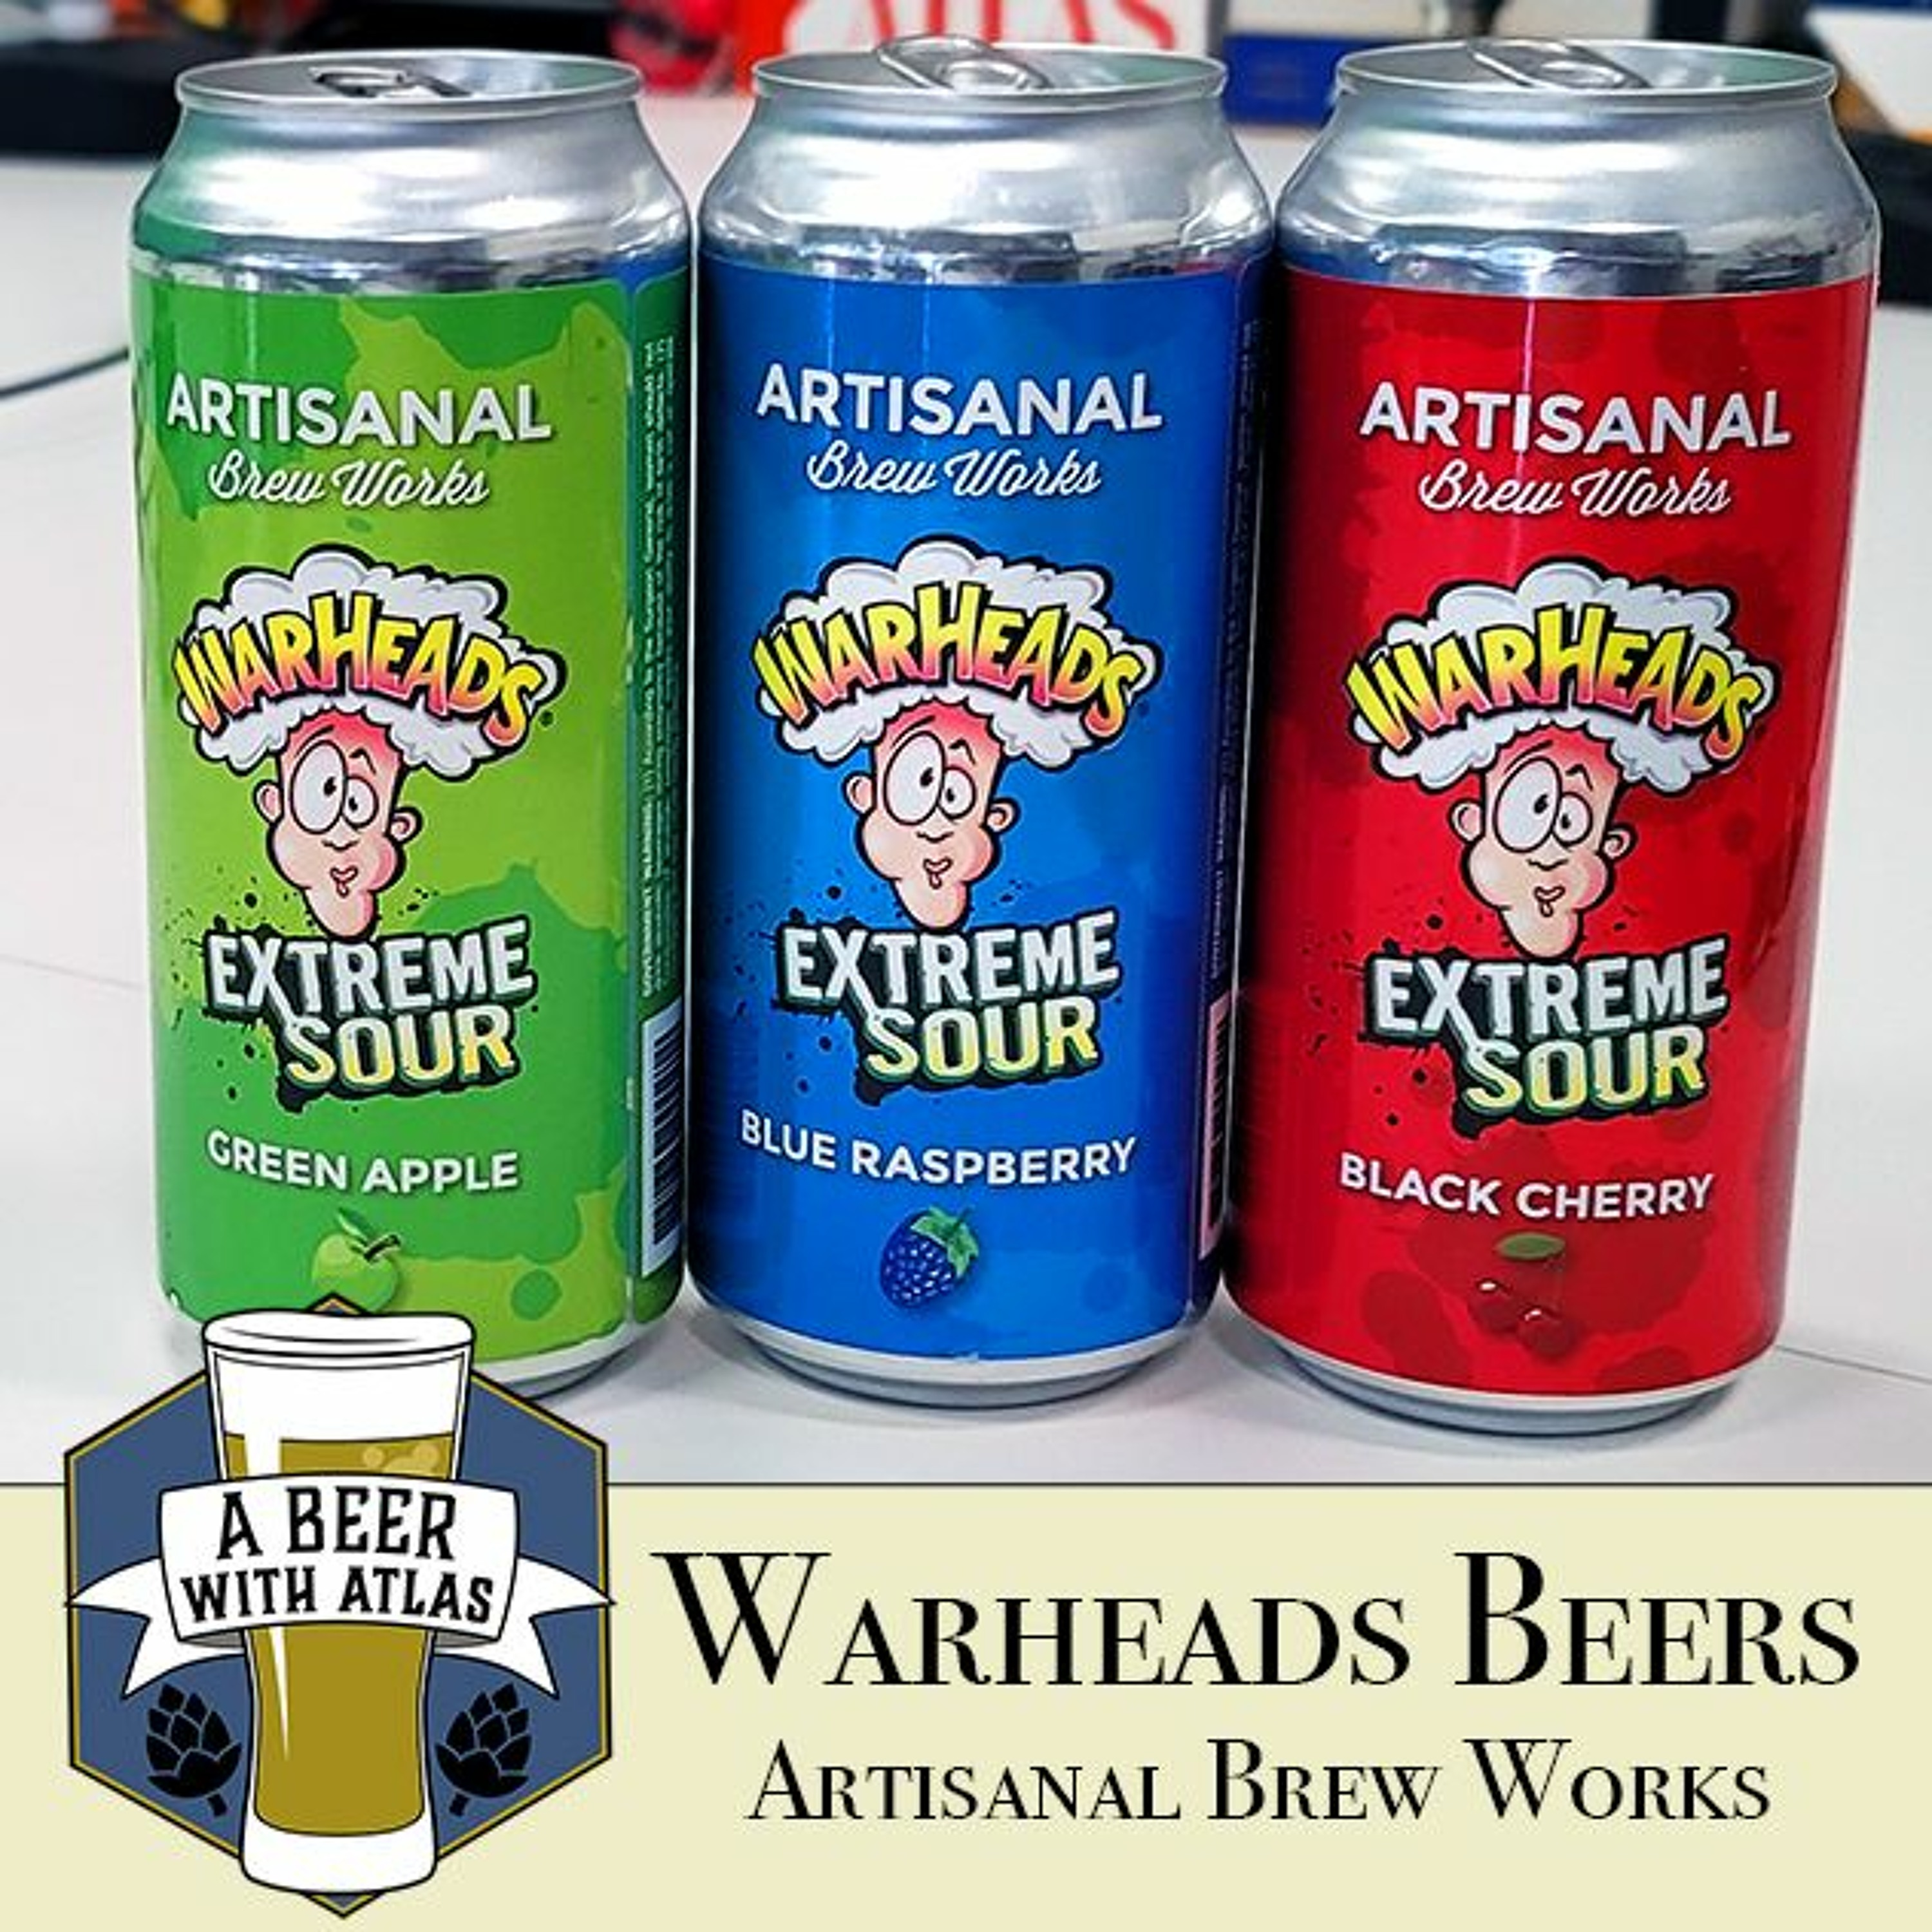 Warheads Sour Beers - Artisanal Brew Works - A Beer with Atlas 139 - travel nurse craft beer podcast